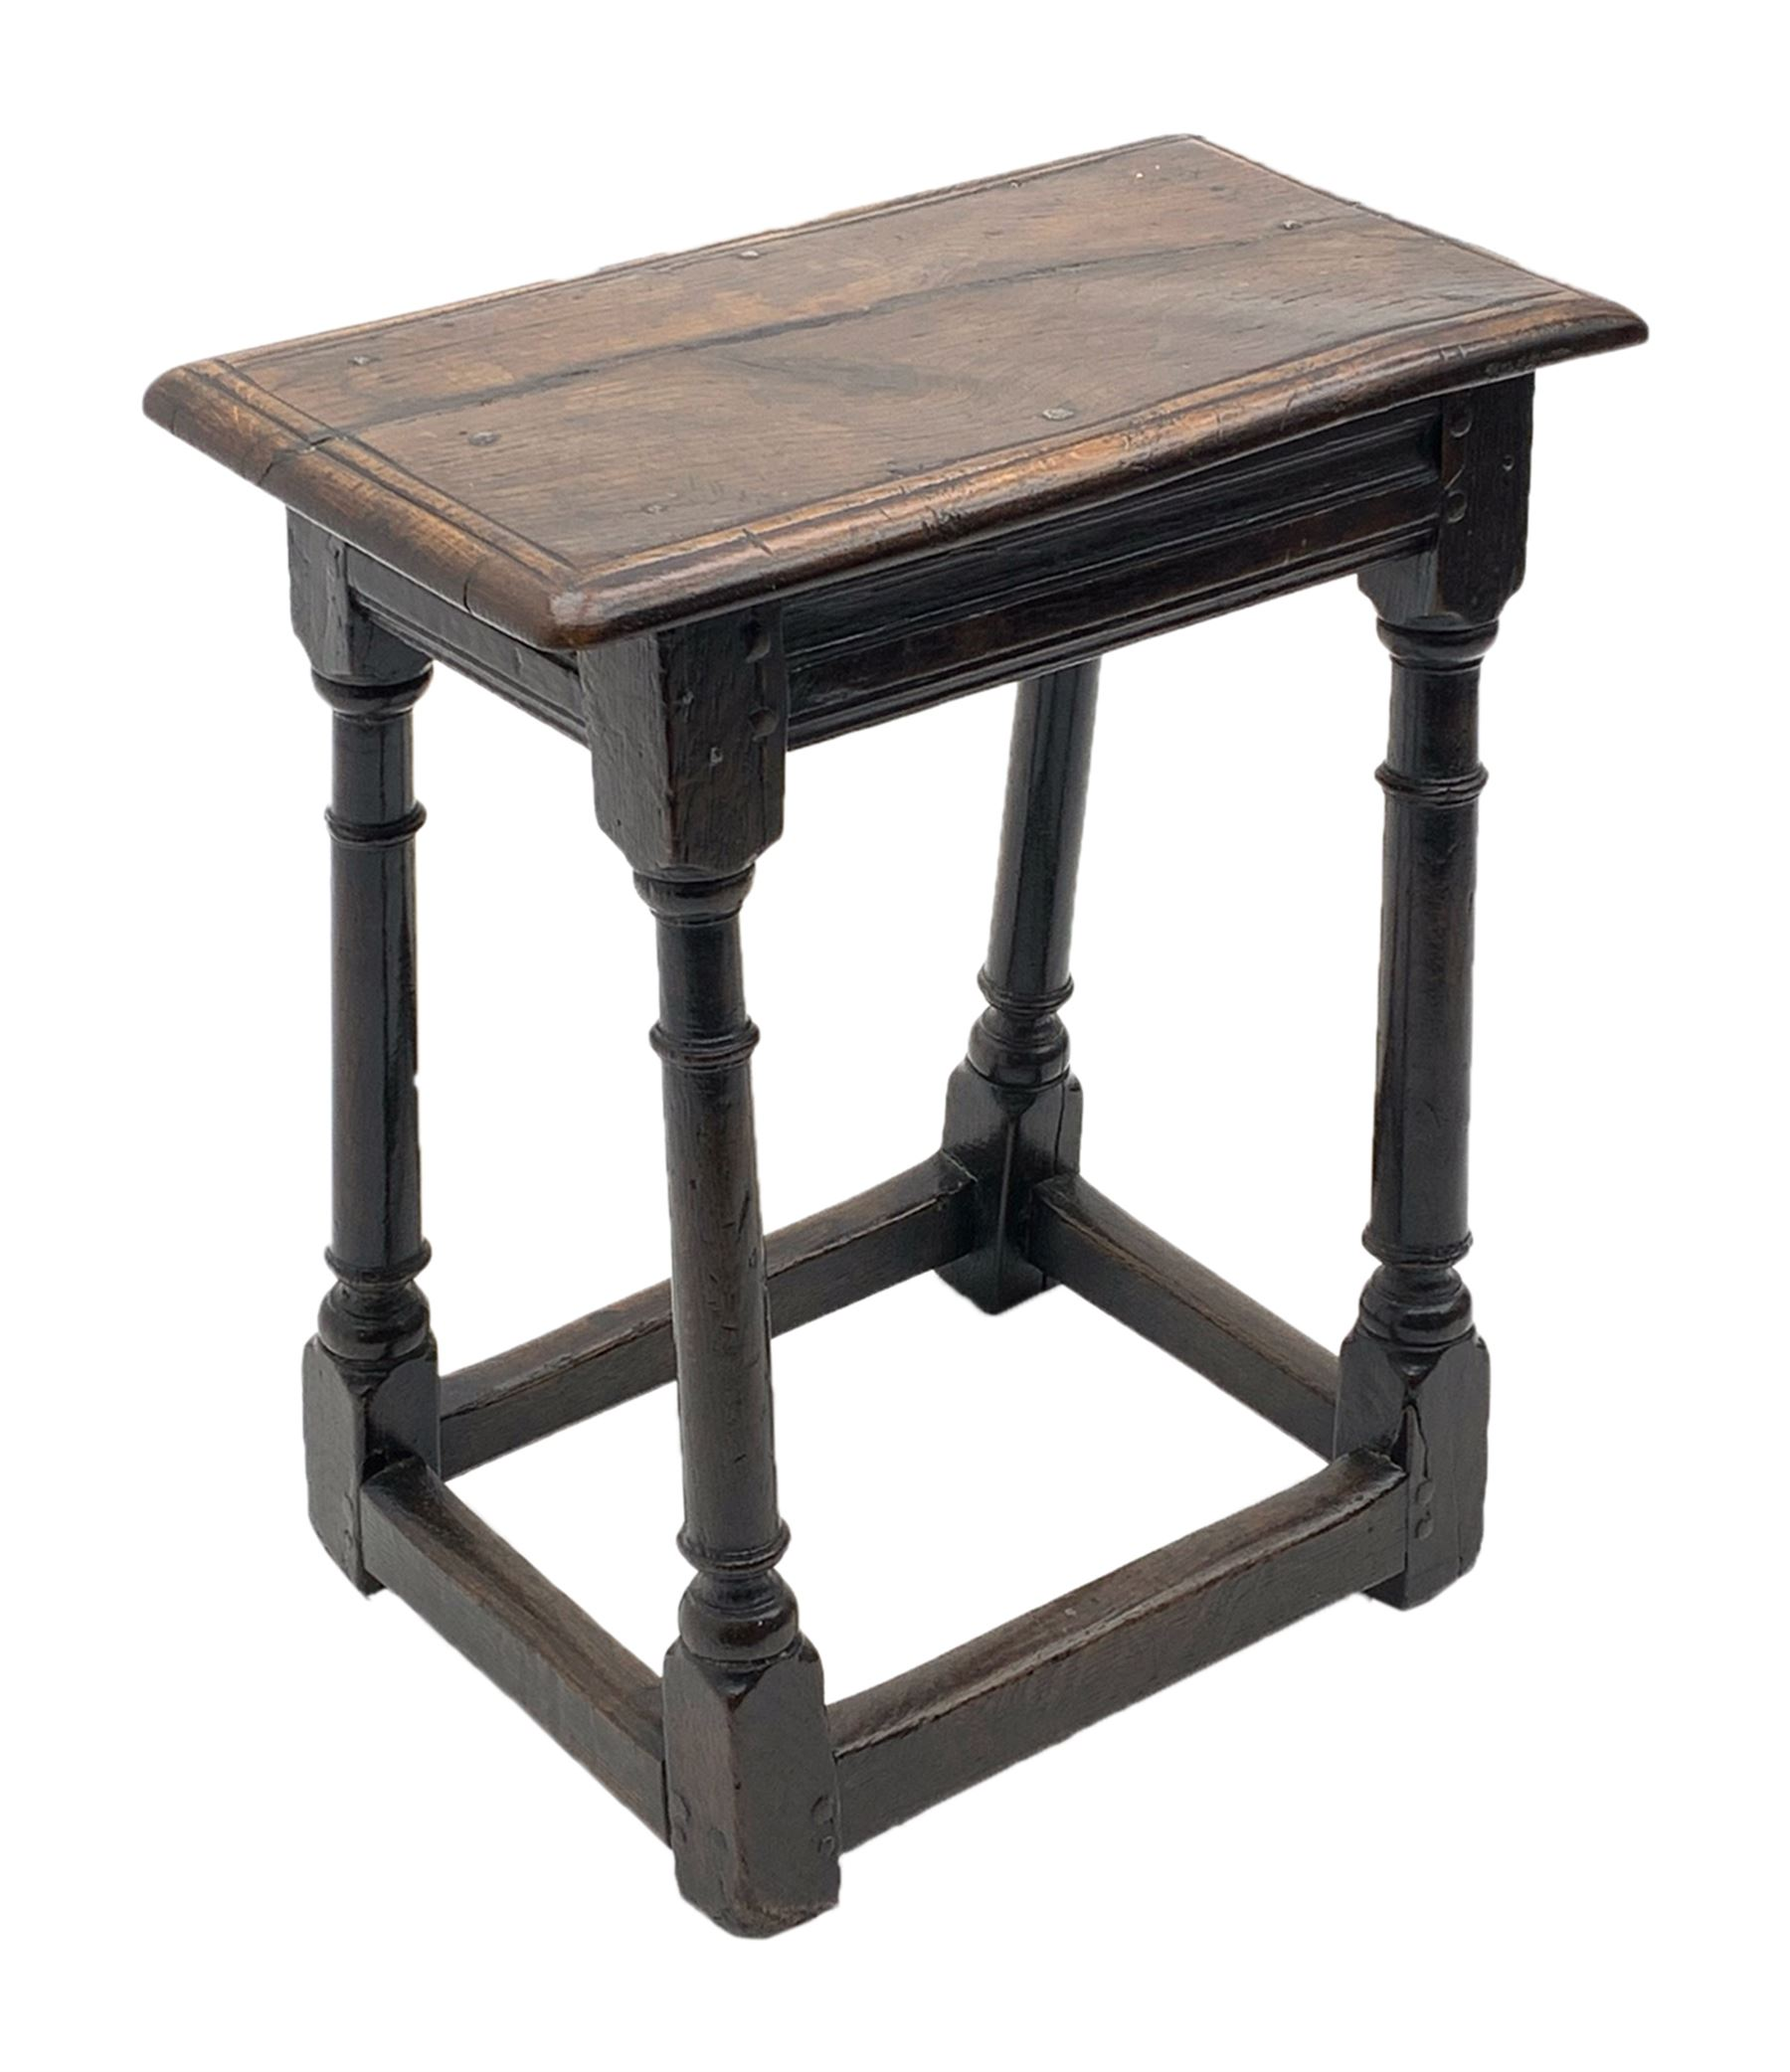 Late 17th century oak joined stool